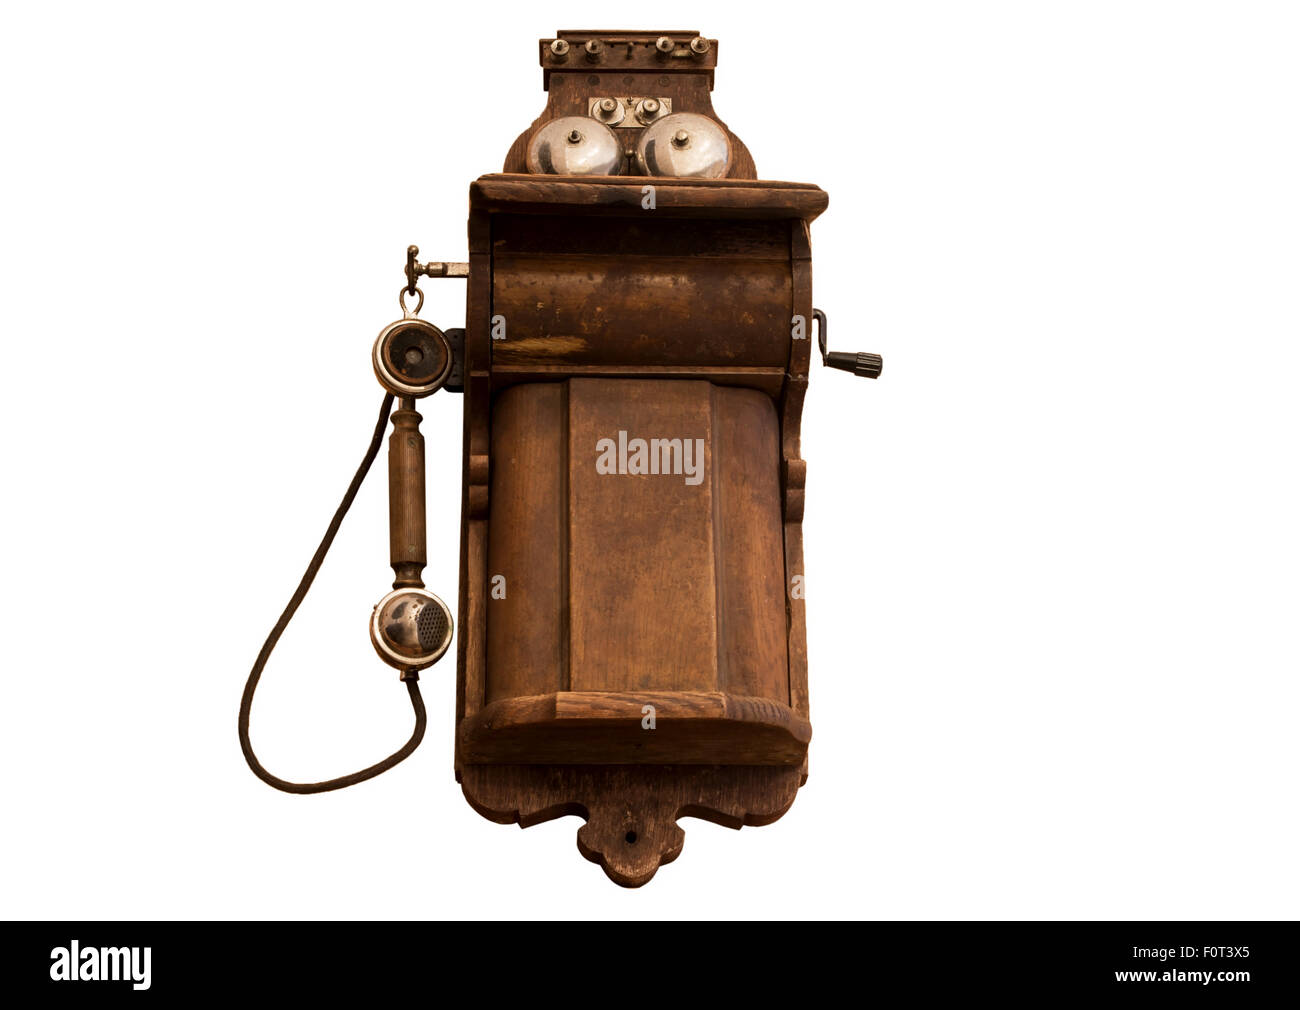 old wooden telephone on a white background - Stock Image